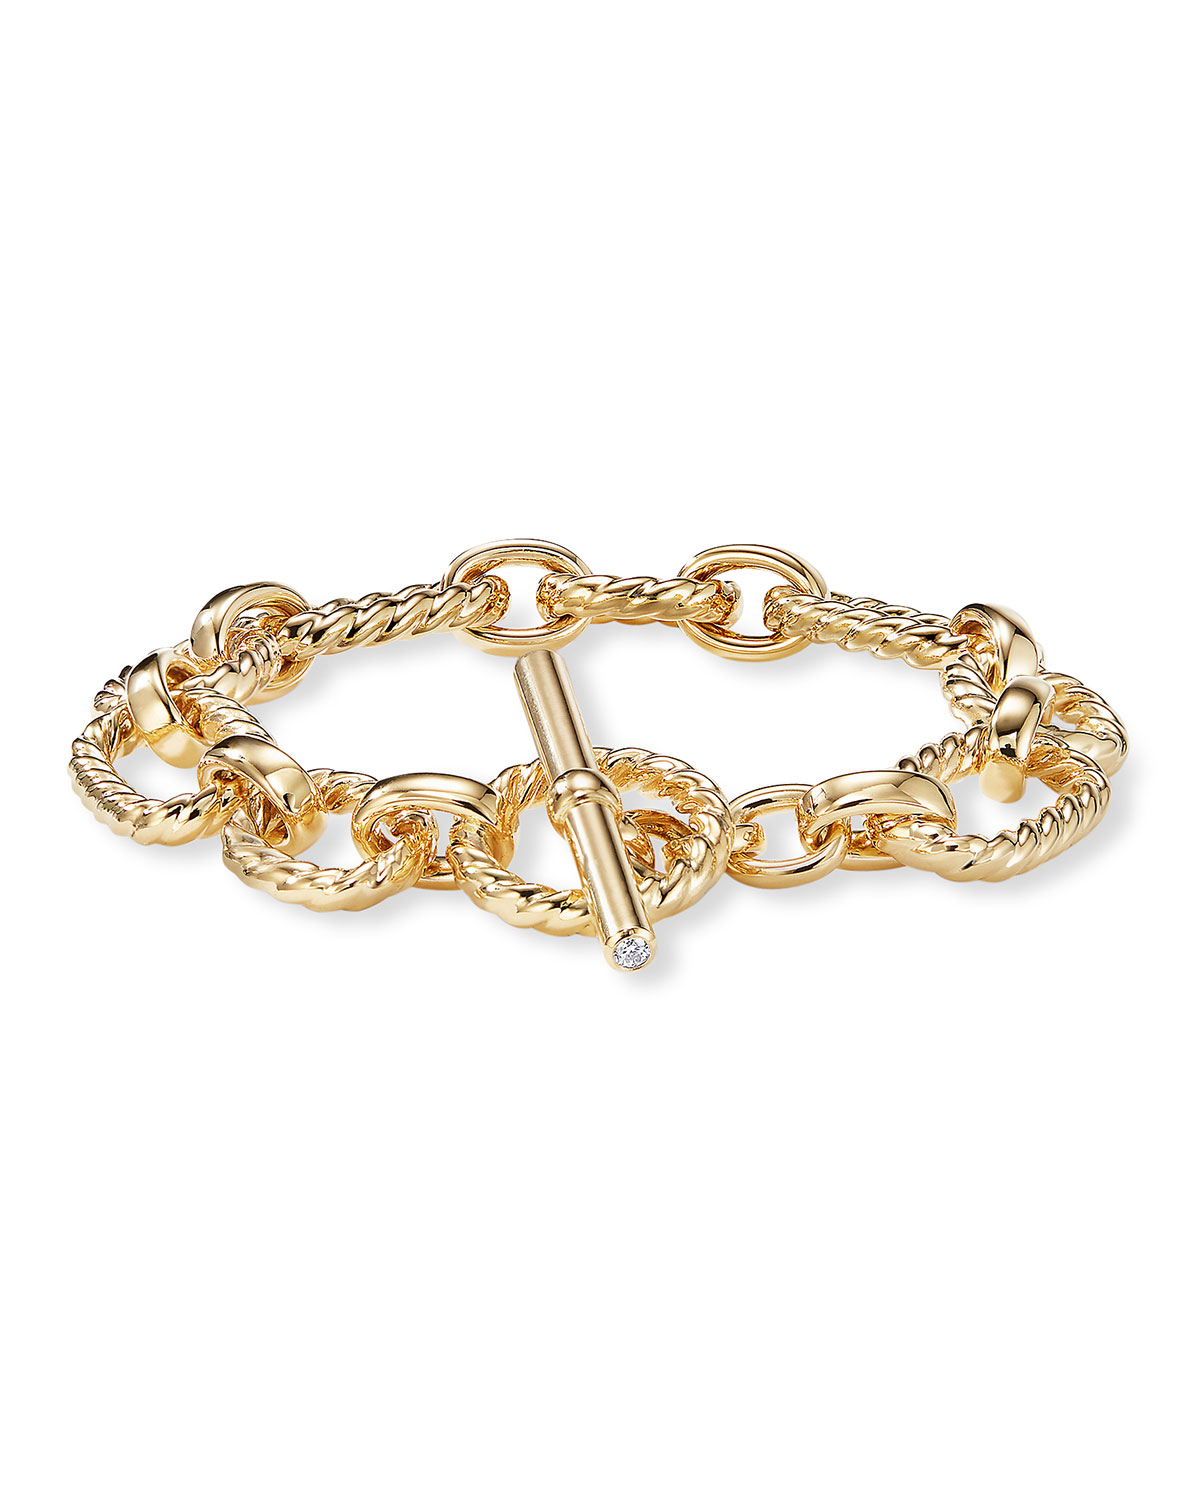 12 5mm Cushion Link Bracelet In 18k Gold